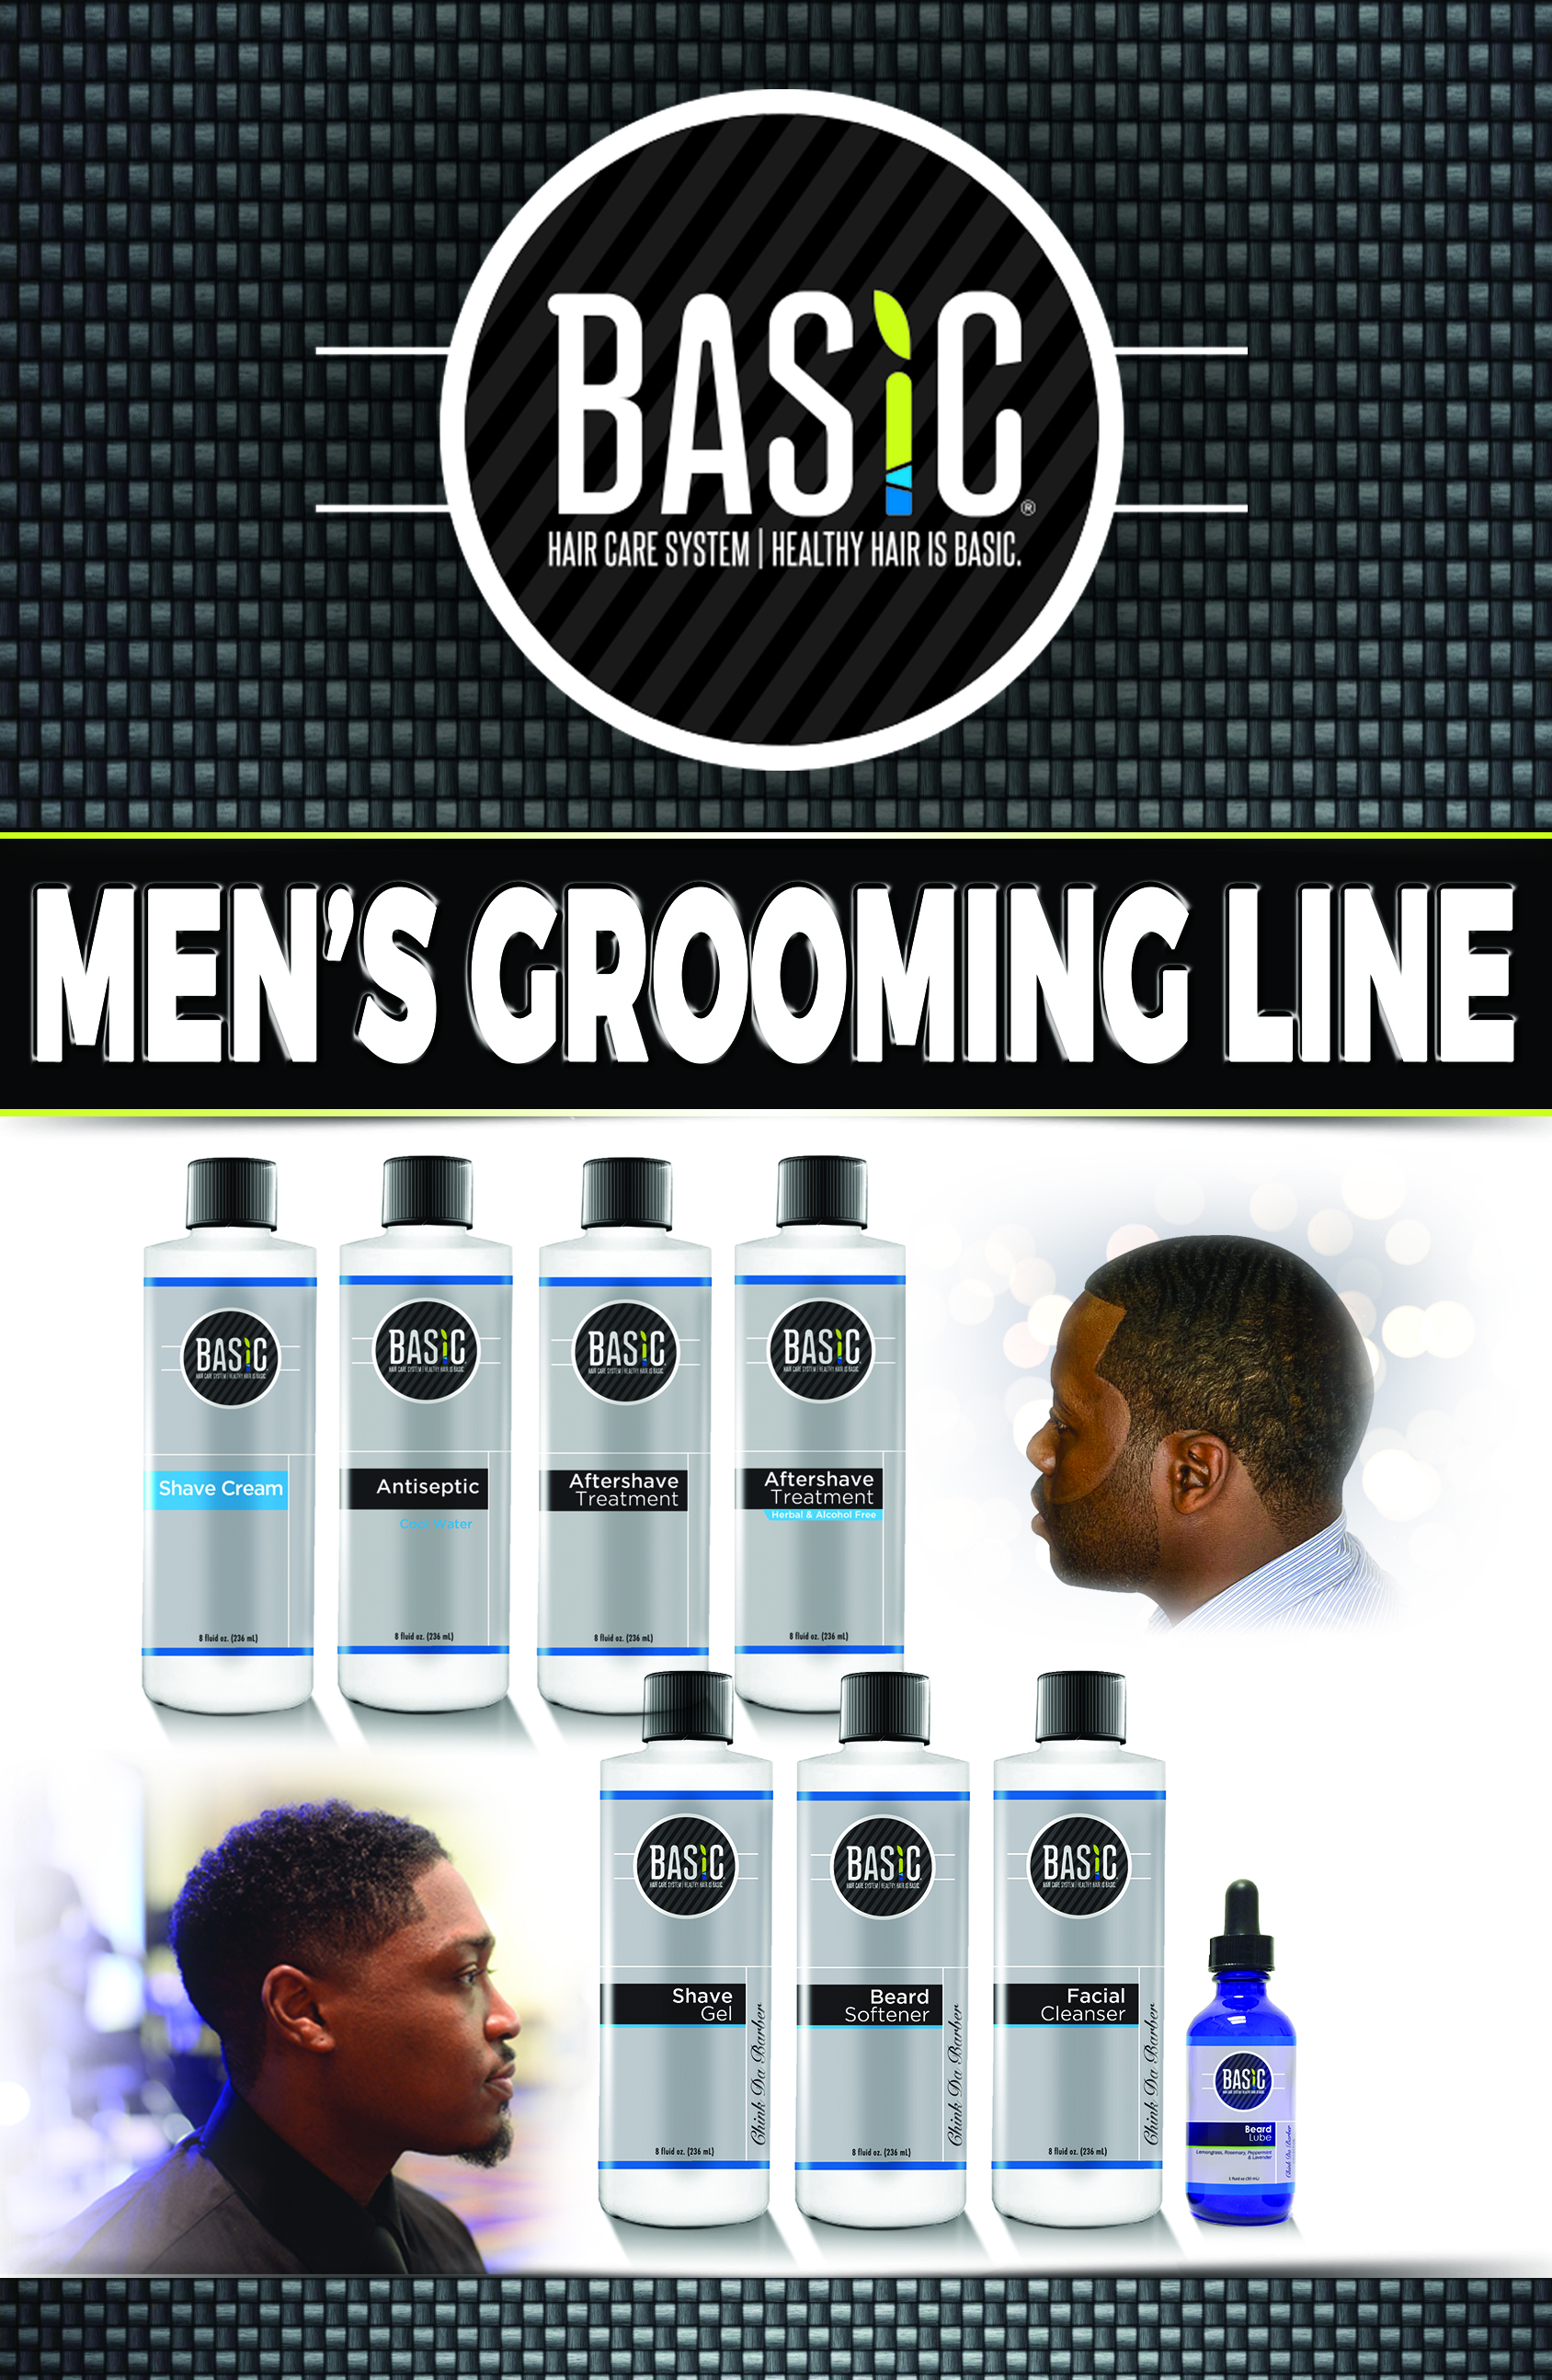 Men's Grooming Line pamphlet